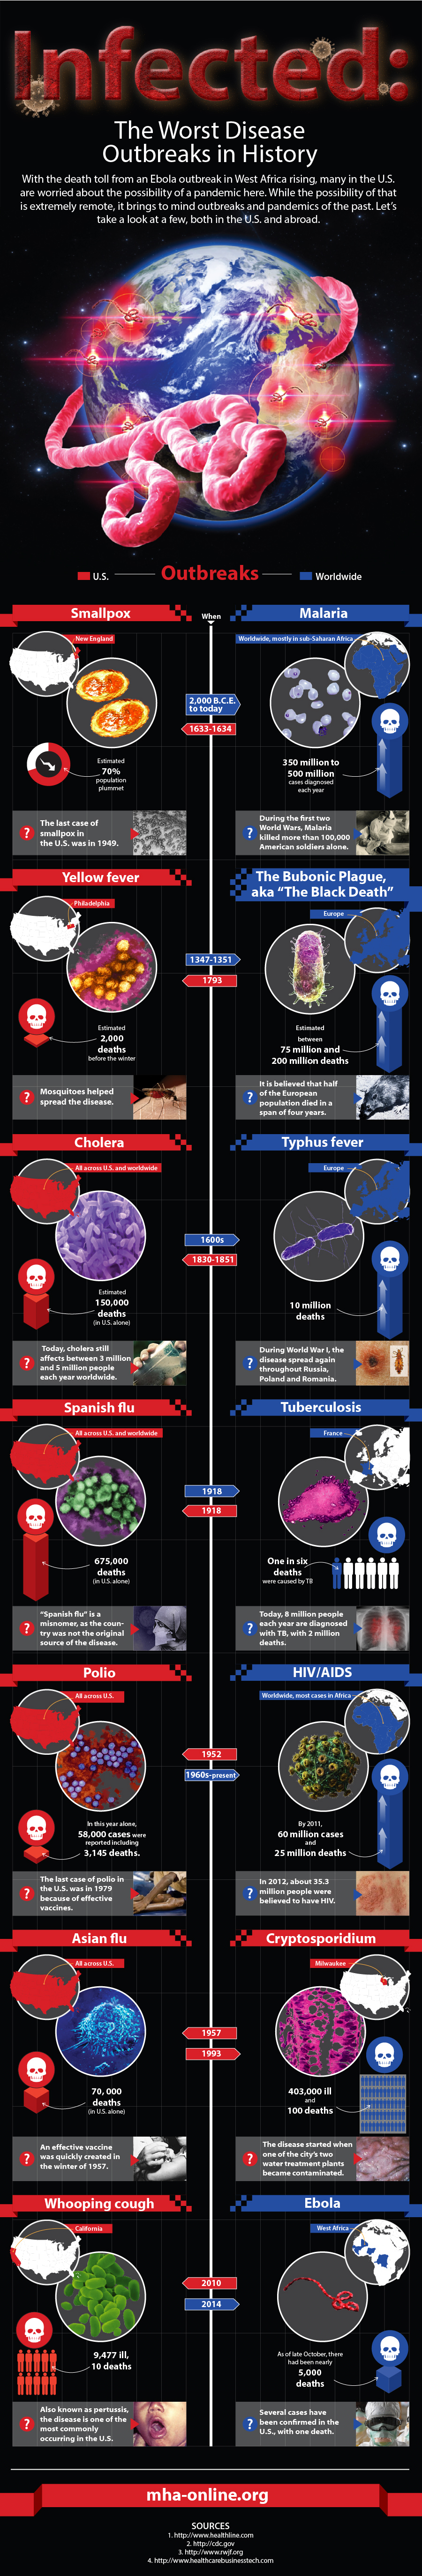 Disease Outbreaks